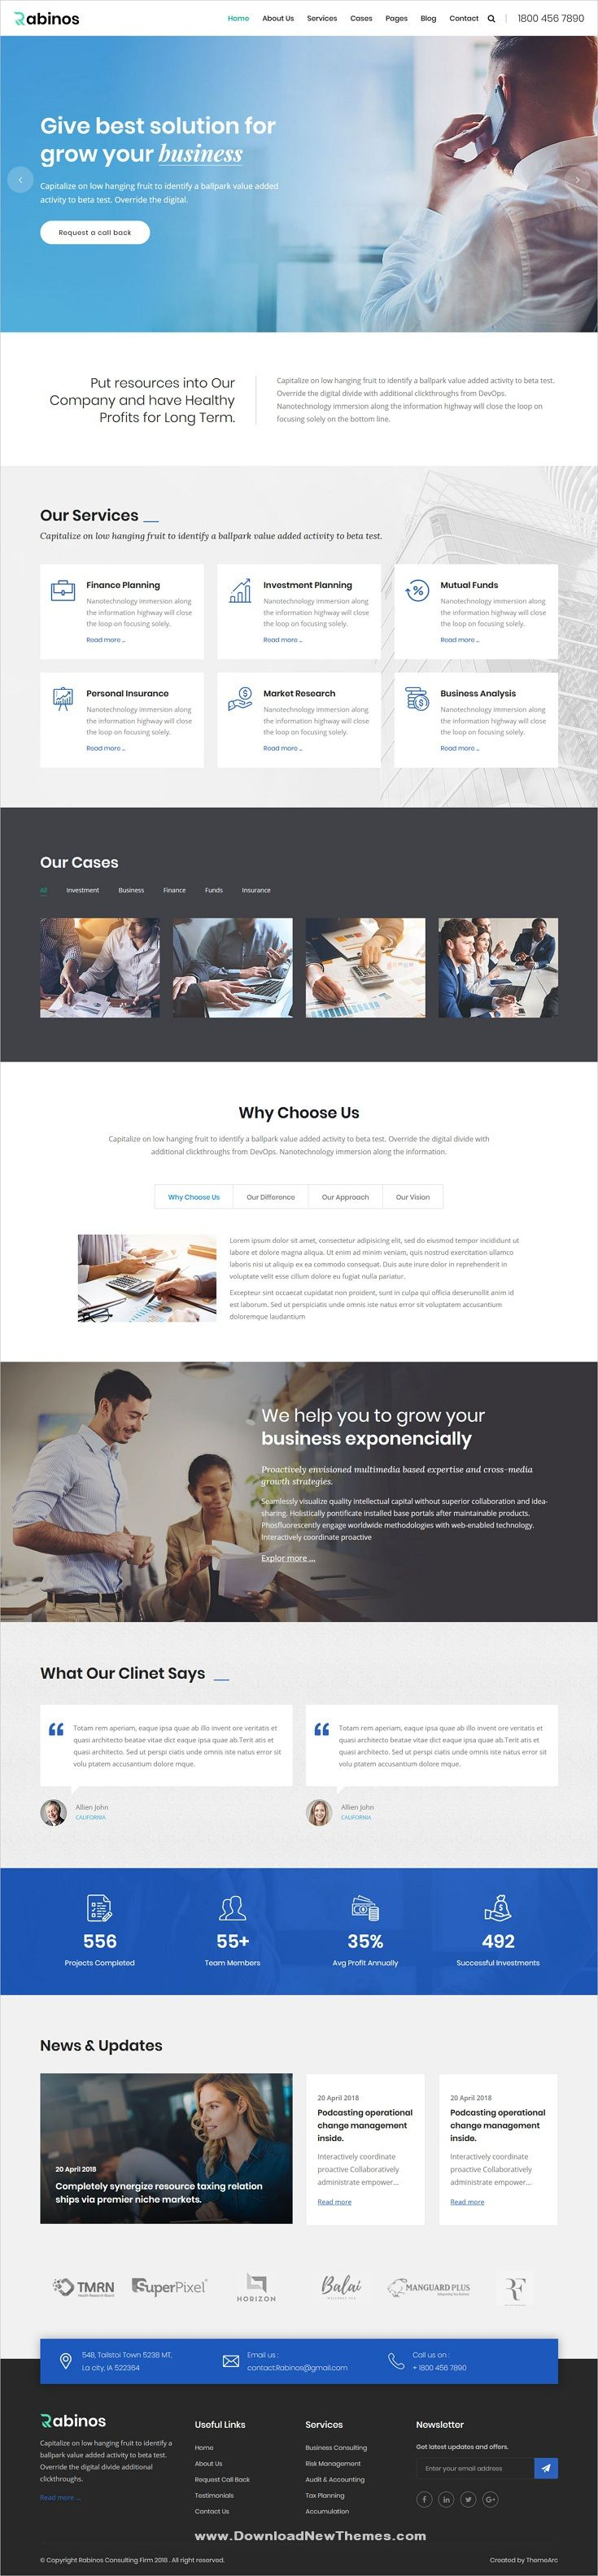 Rabinos Is A Clean And Modern Design 5in1 Responsive Bootstrap Html Theme For Consulting Business And Business Web Design Web Design Inspiration Web Design